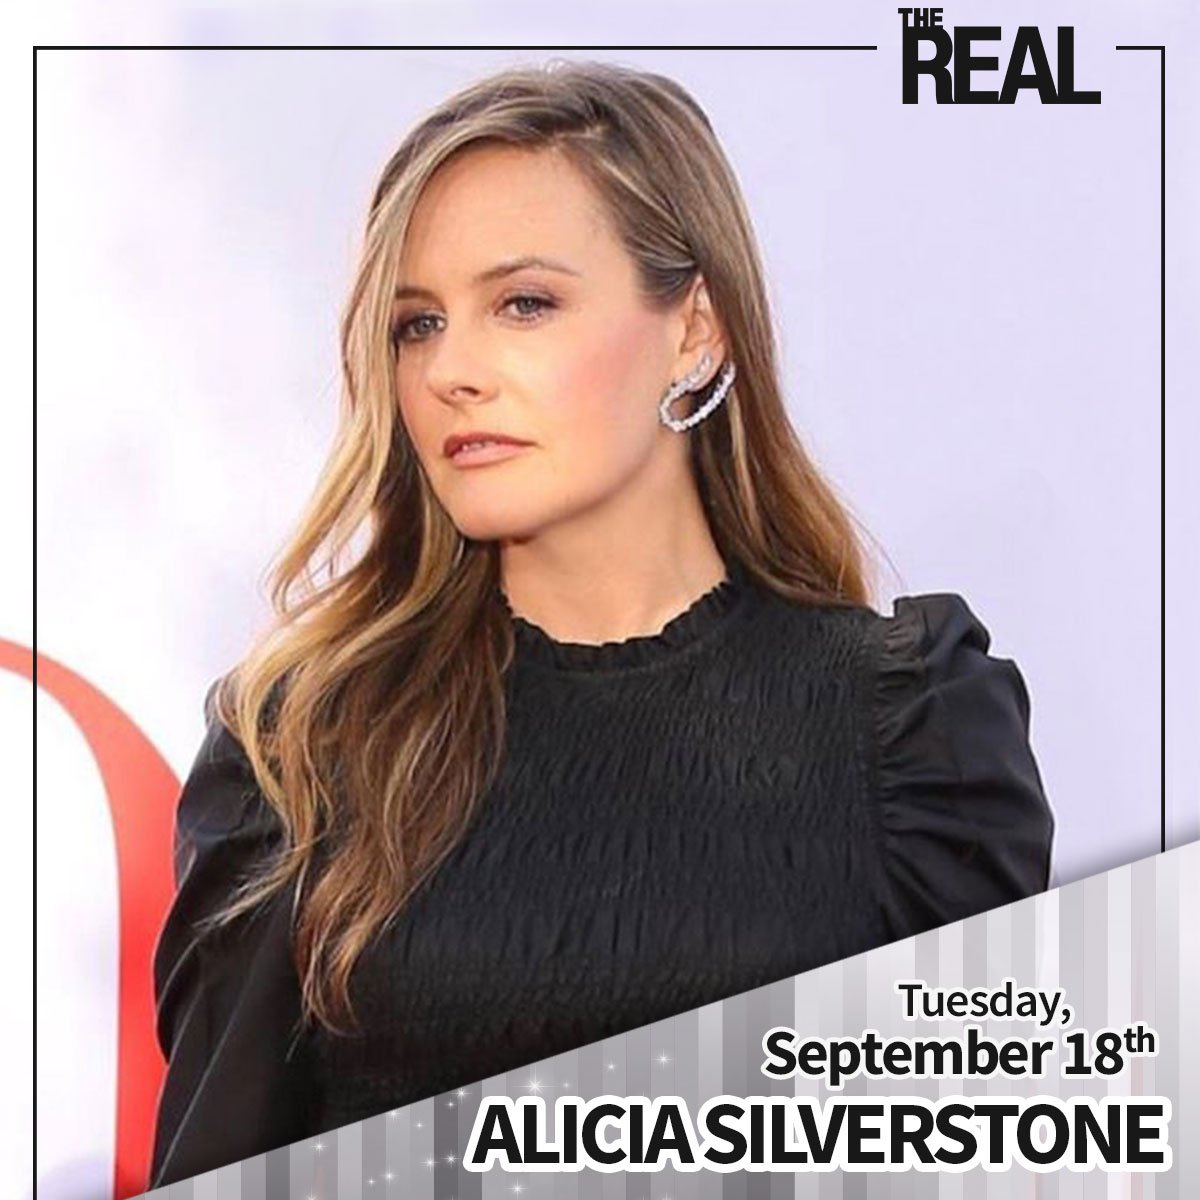 Right now! Tune into @TheRealDaytime at 11am & 1pm today! For listings https://t.co/C9YgRTXEnj https://t.co/IkWL3dZChP